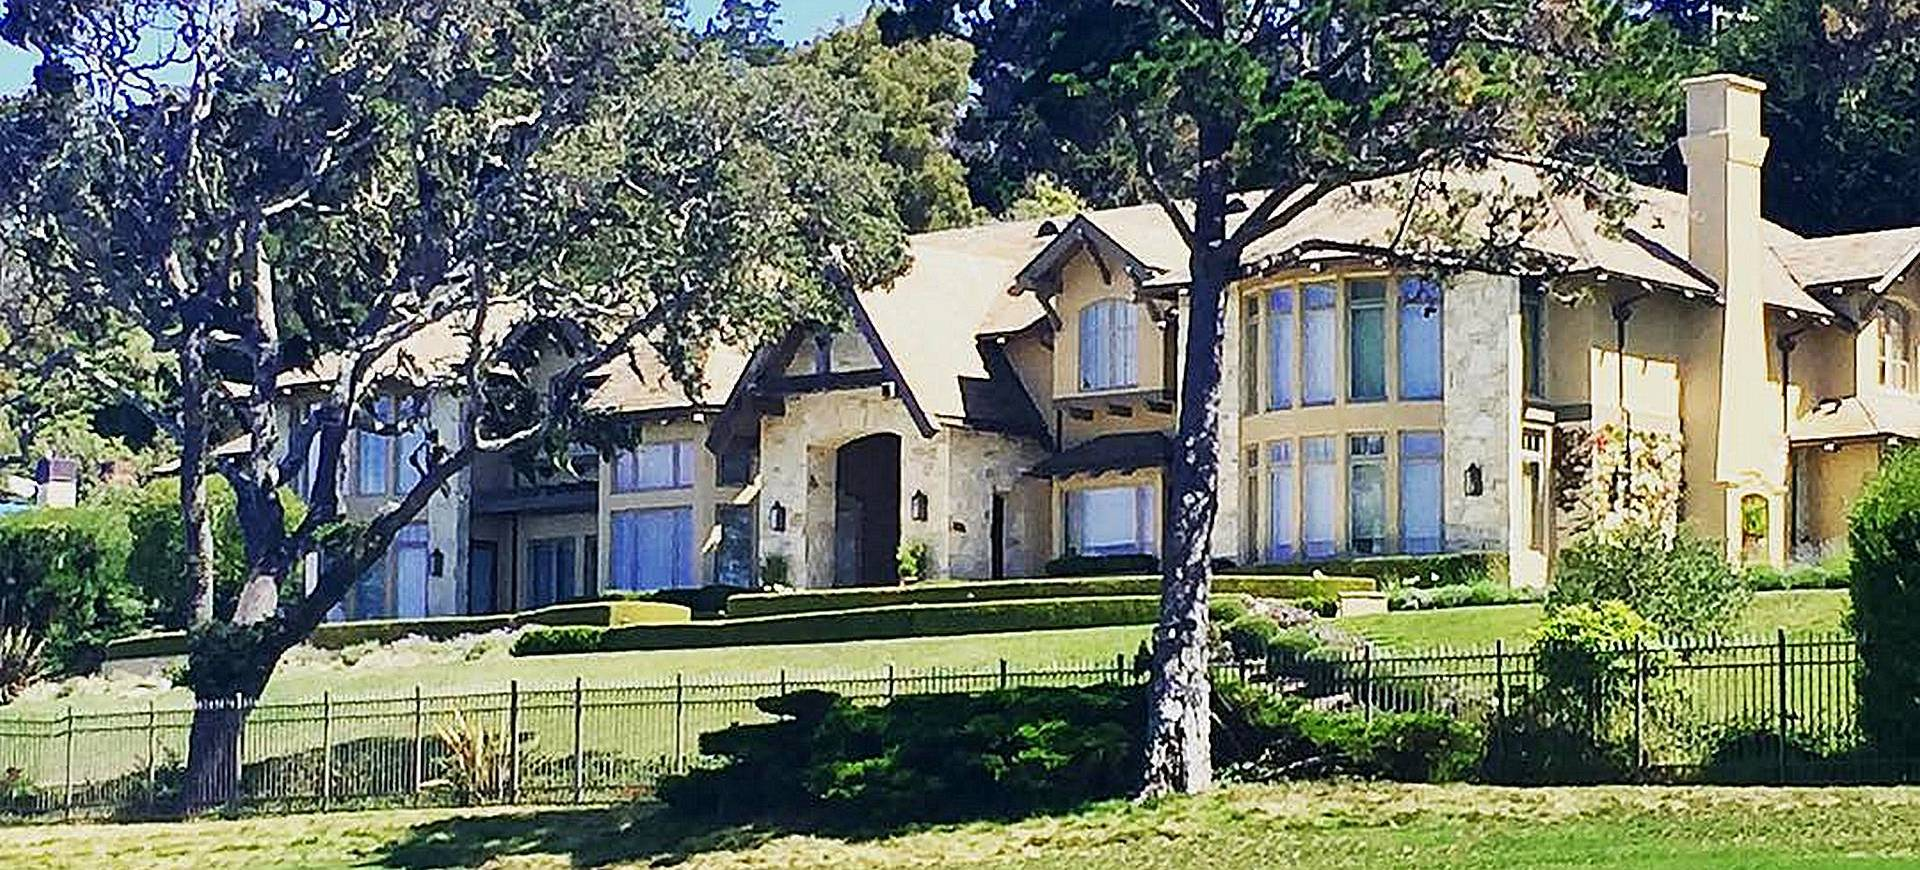 Dority Roofing  Solar The Highest Quality on the Monterey Peninsula  Dority Roofing and Solar